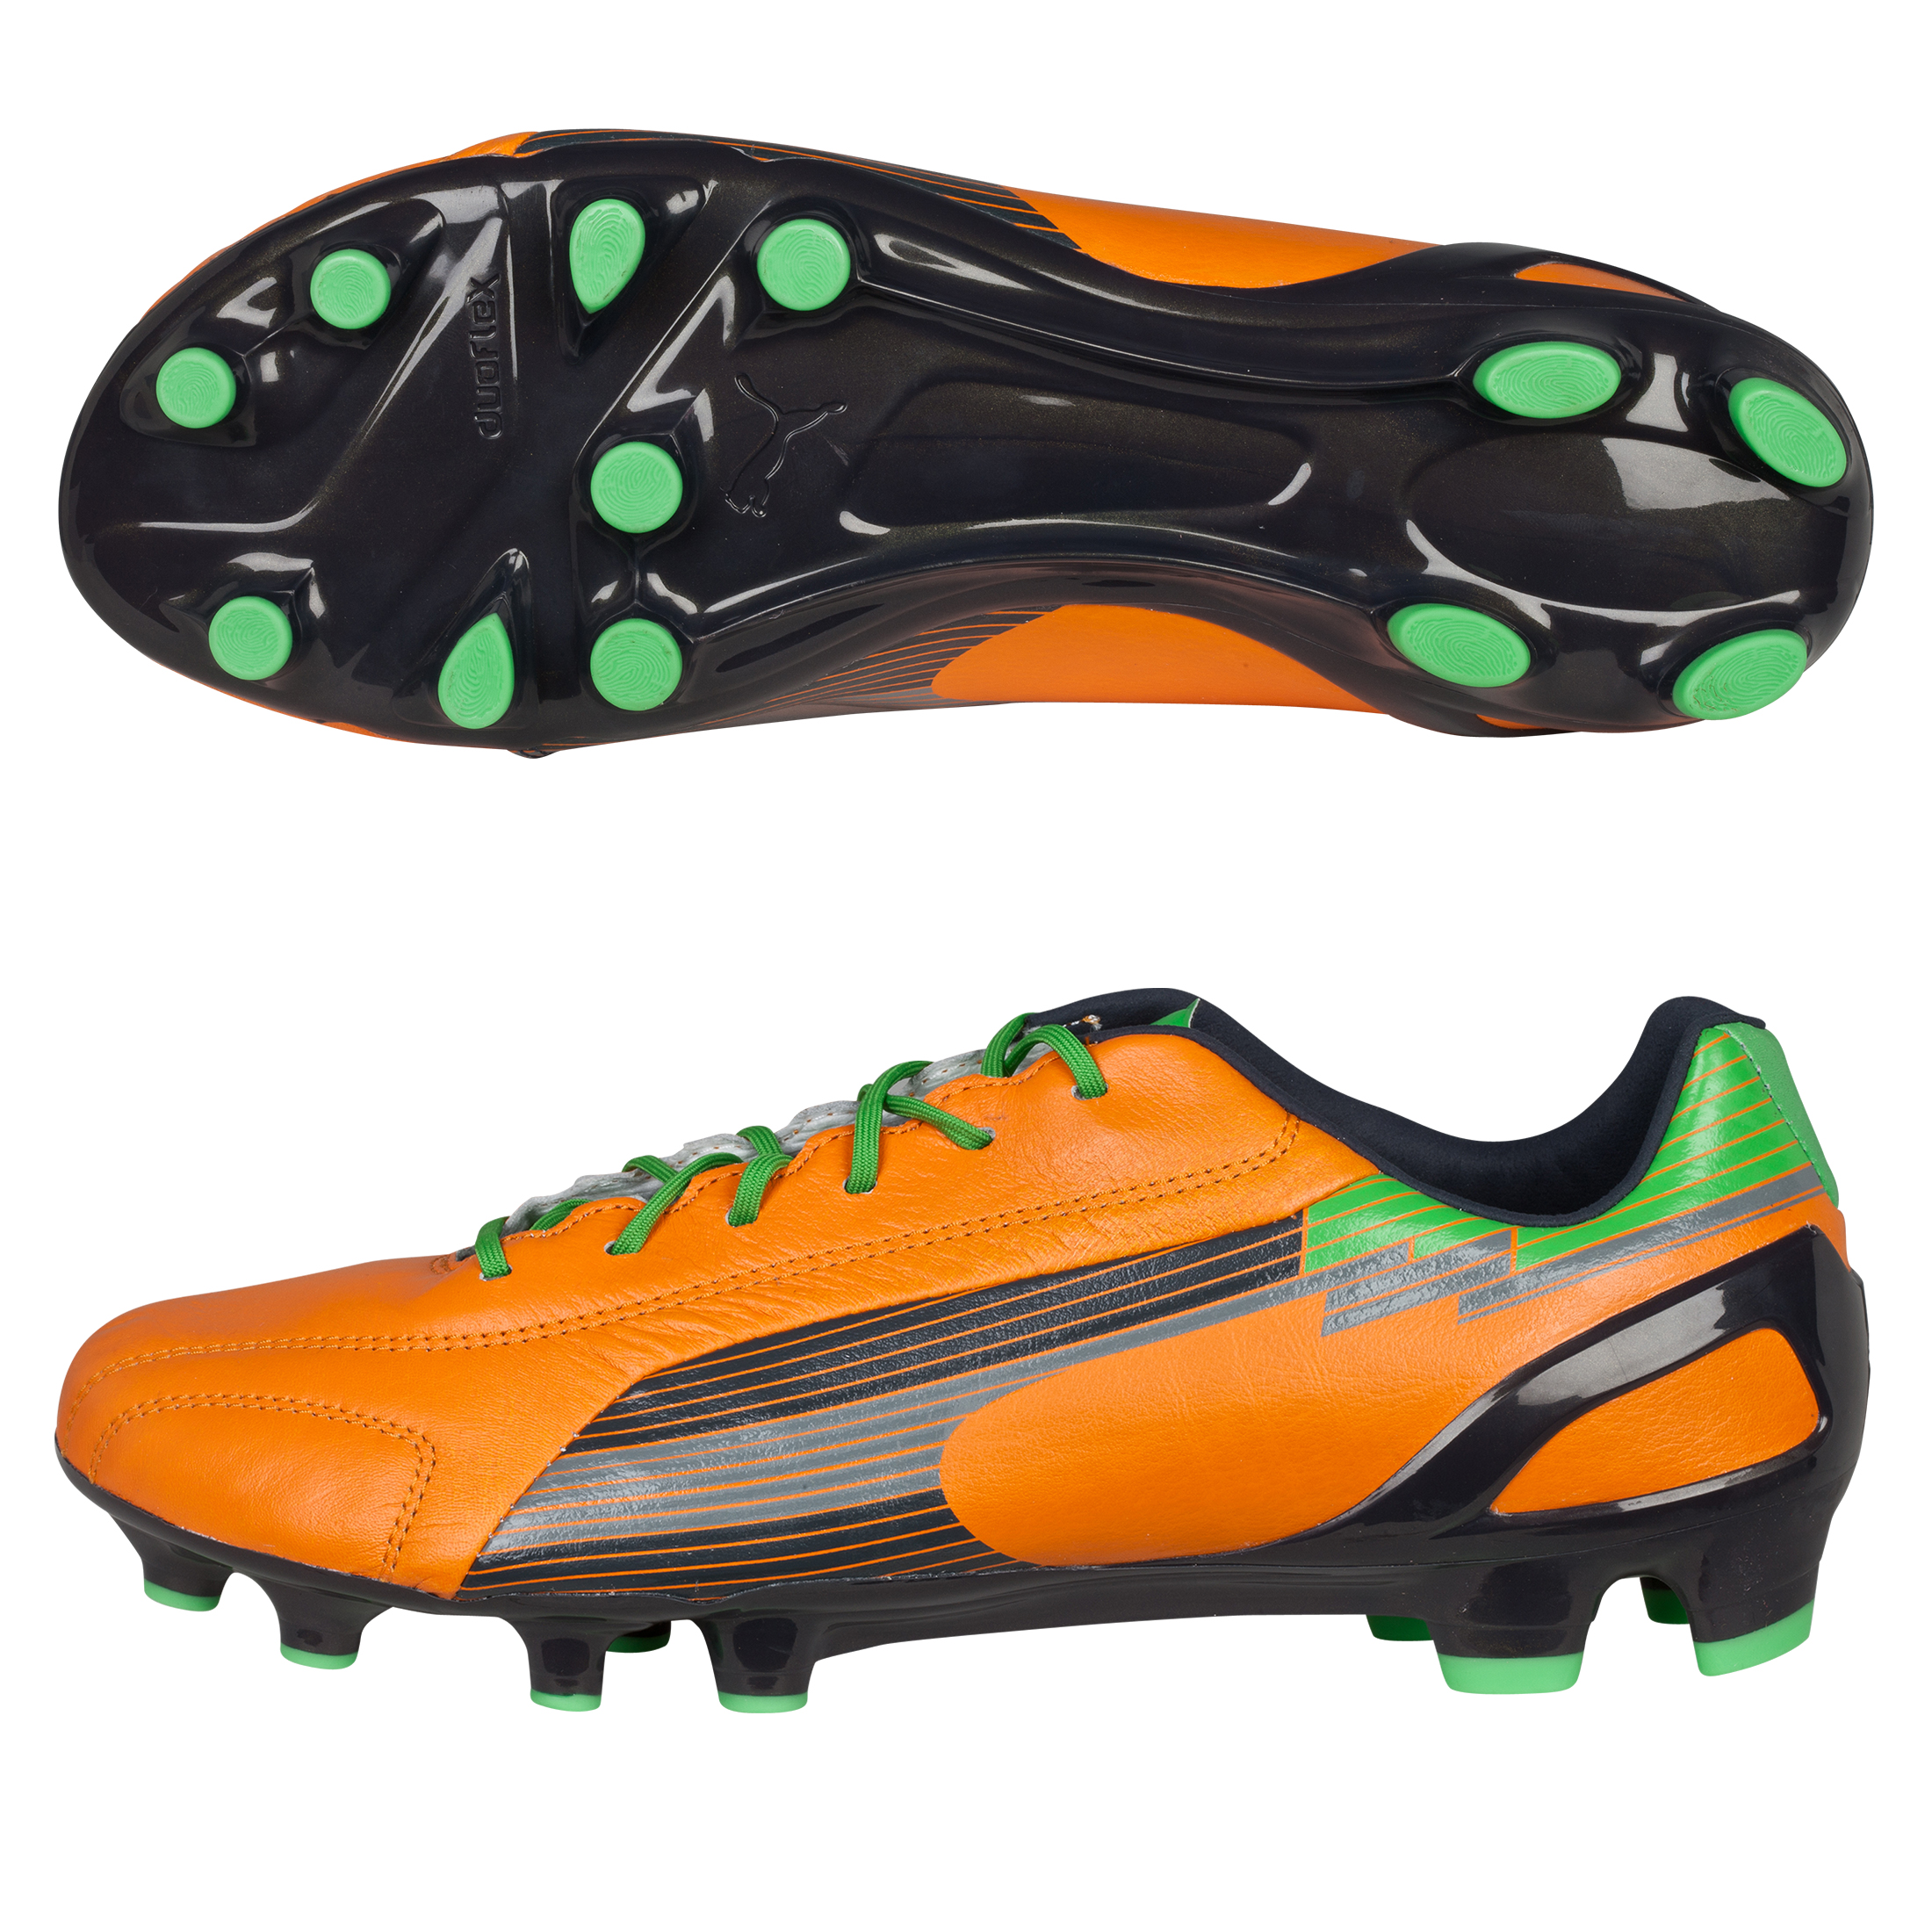 Evospeed 1 Leather FG Flame Orange/Team Charcoal/Classic Green